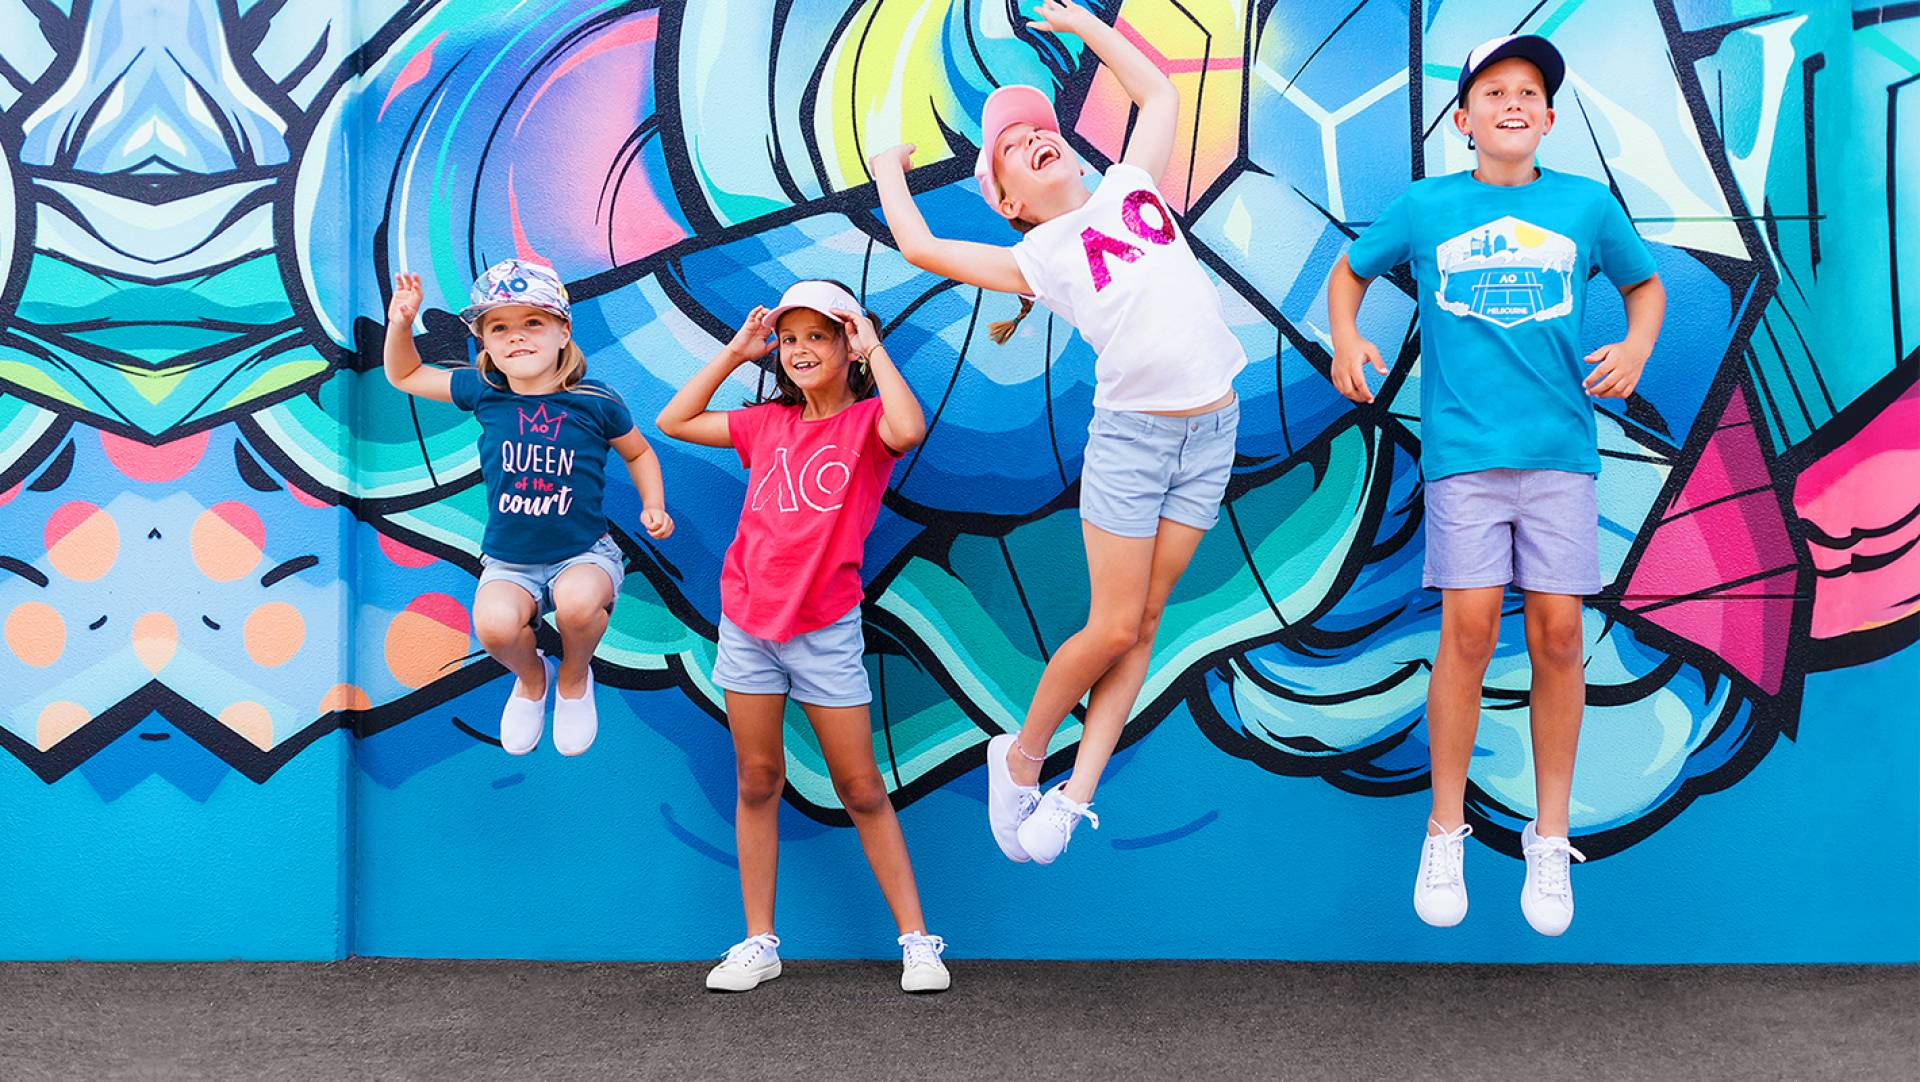 Australian Open Fashion Photoshoot - Final Fan Range